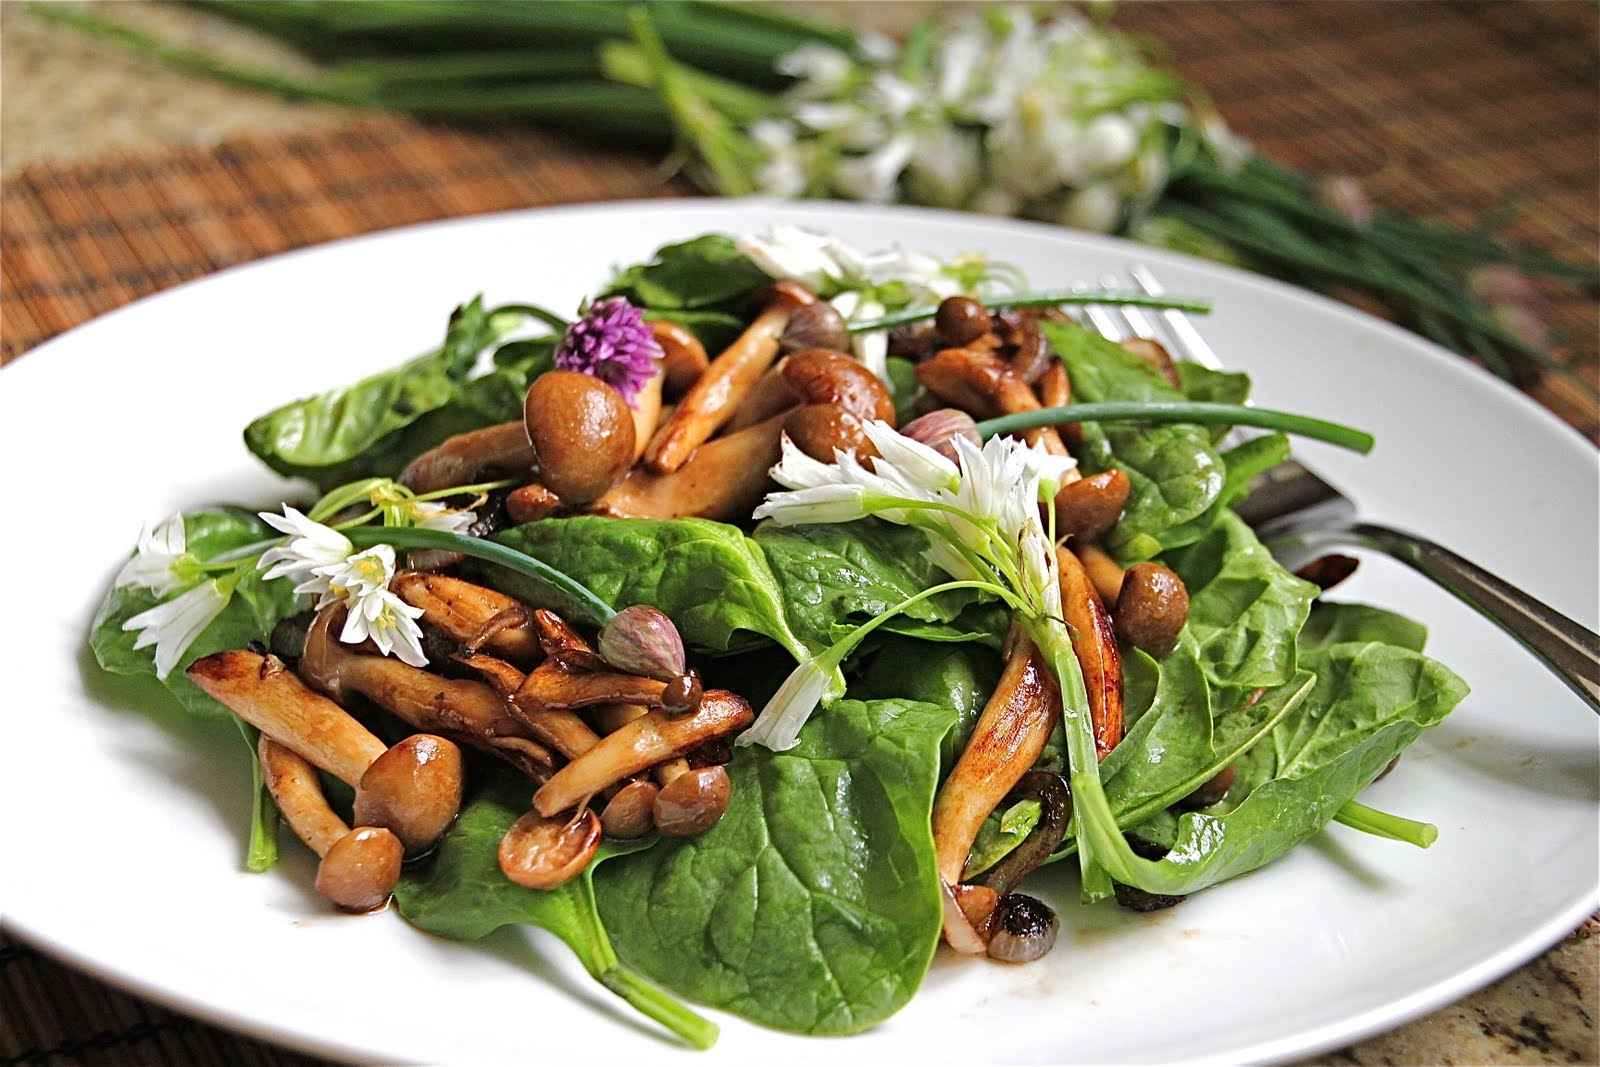 Warm Mushroom Spinach Salad made extra special with Arugula and Chive Flowers